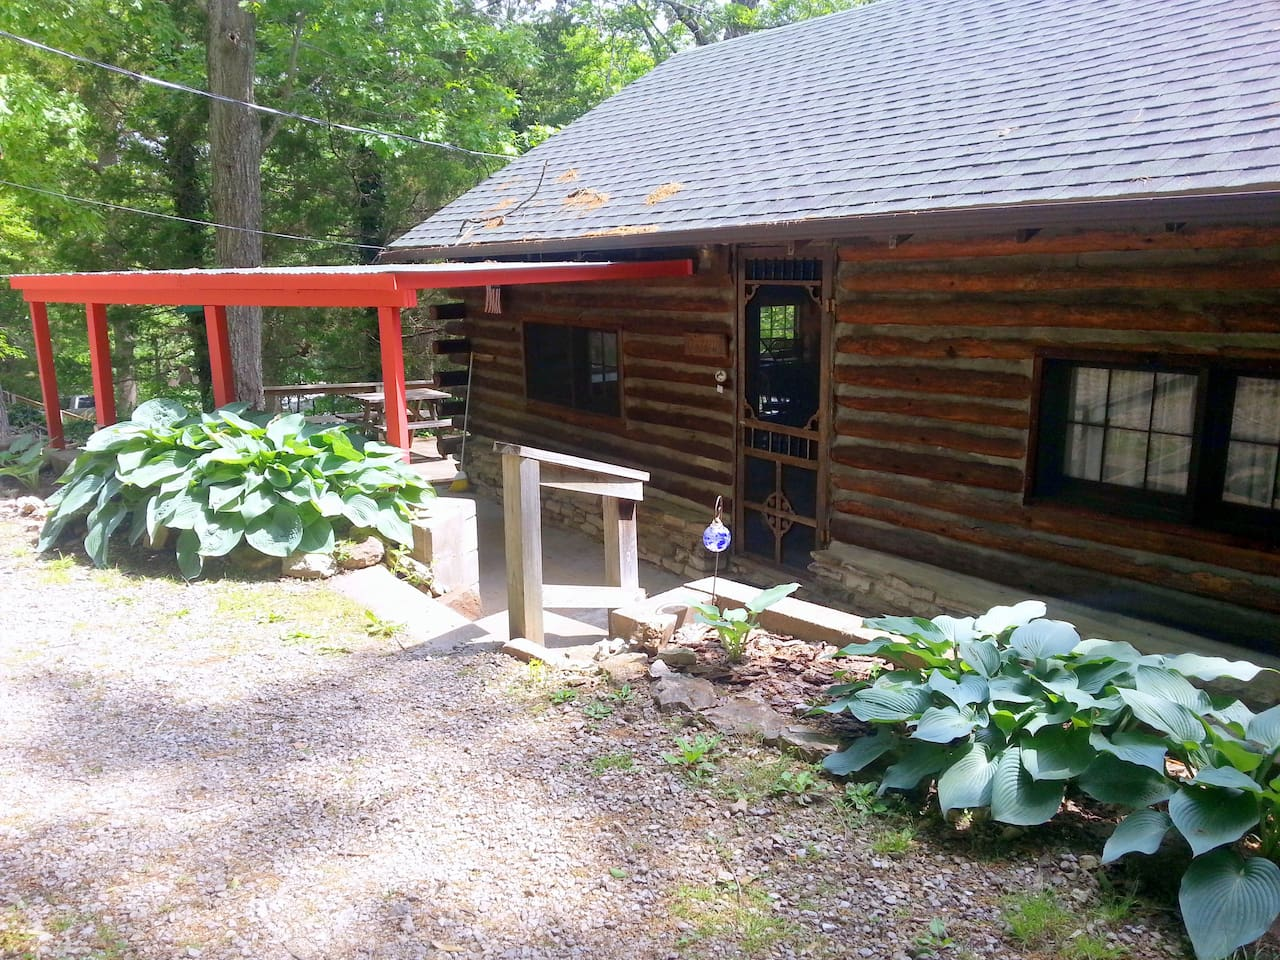 Real log cabin with 2 Bedrooms and Sleeping Porch. Walk down to Private Boat Dock.